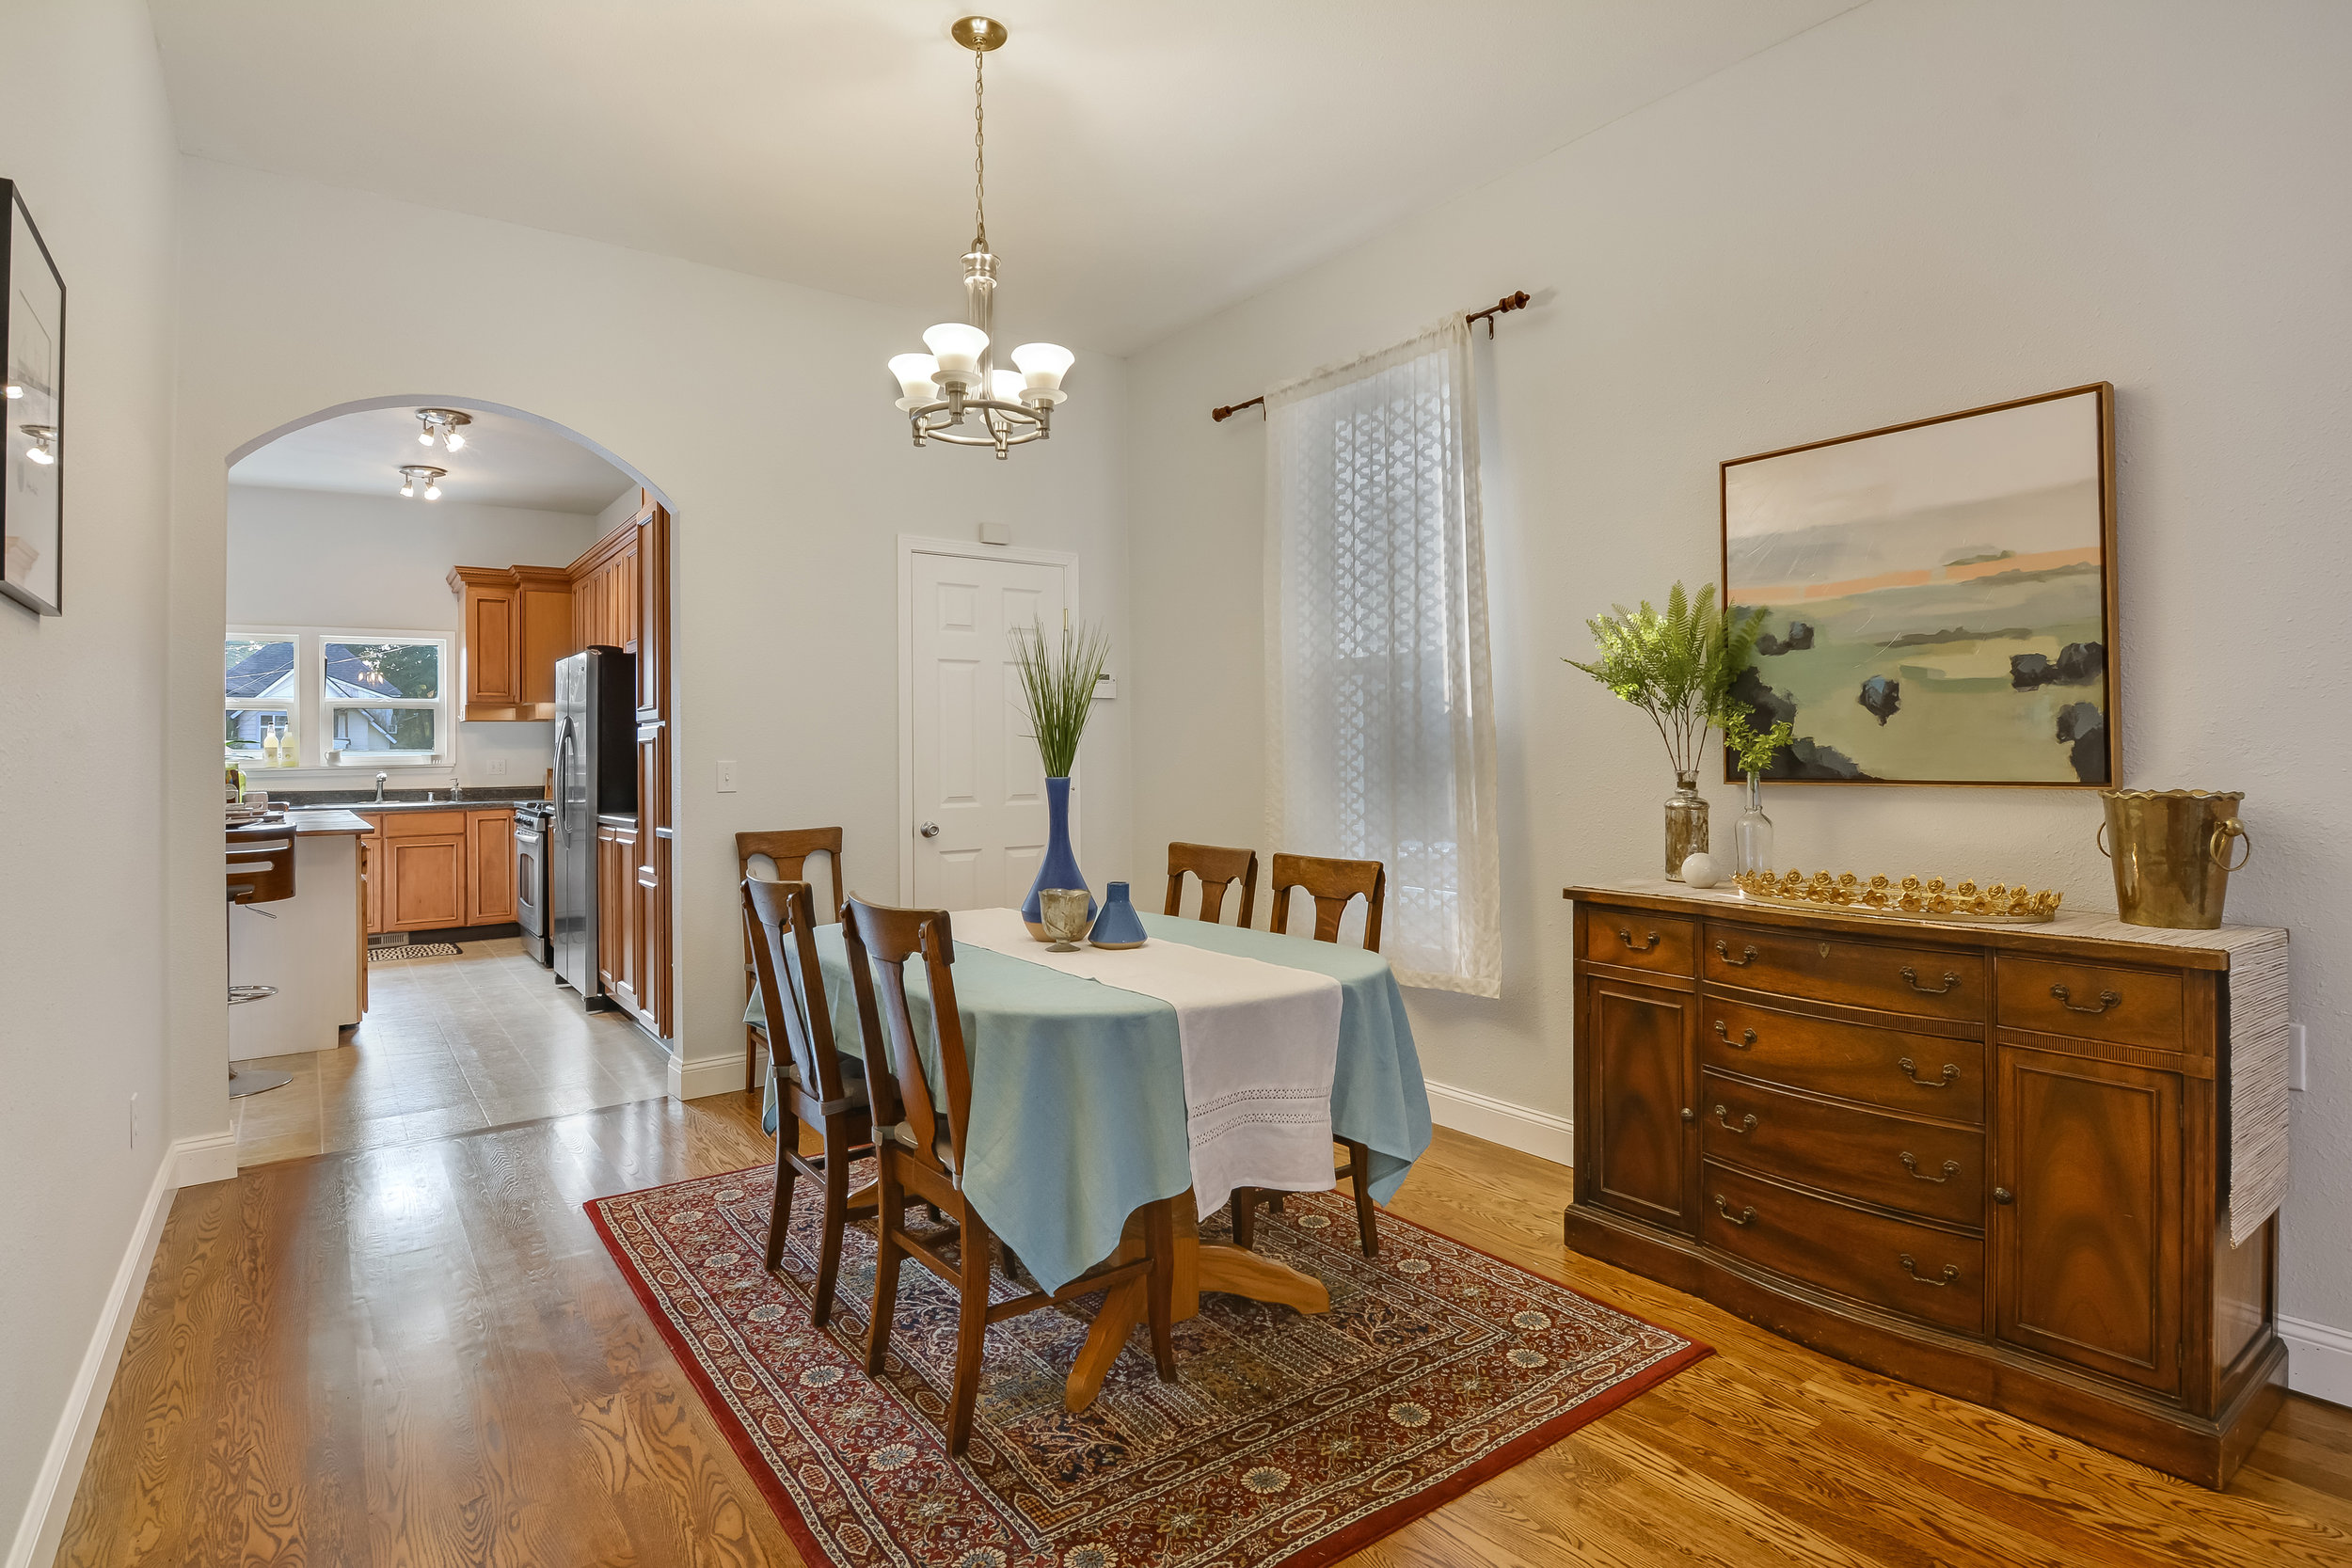 Dining room features an arched opening into the kitchen, a handy closet, and elegantly tall ceilings.